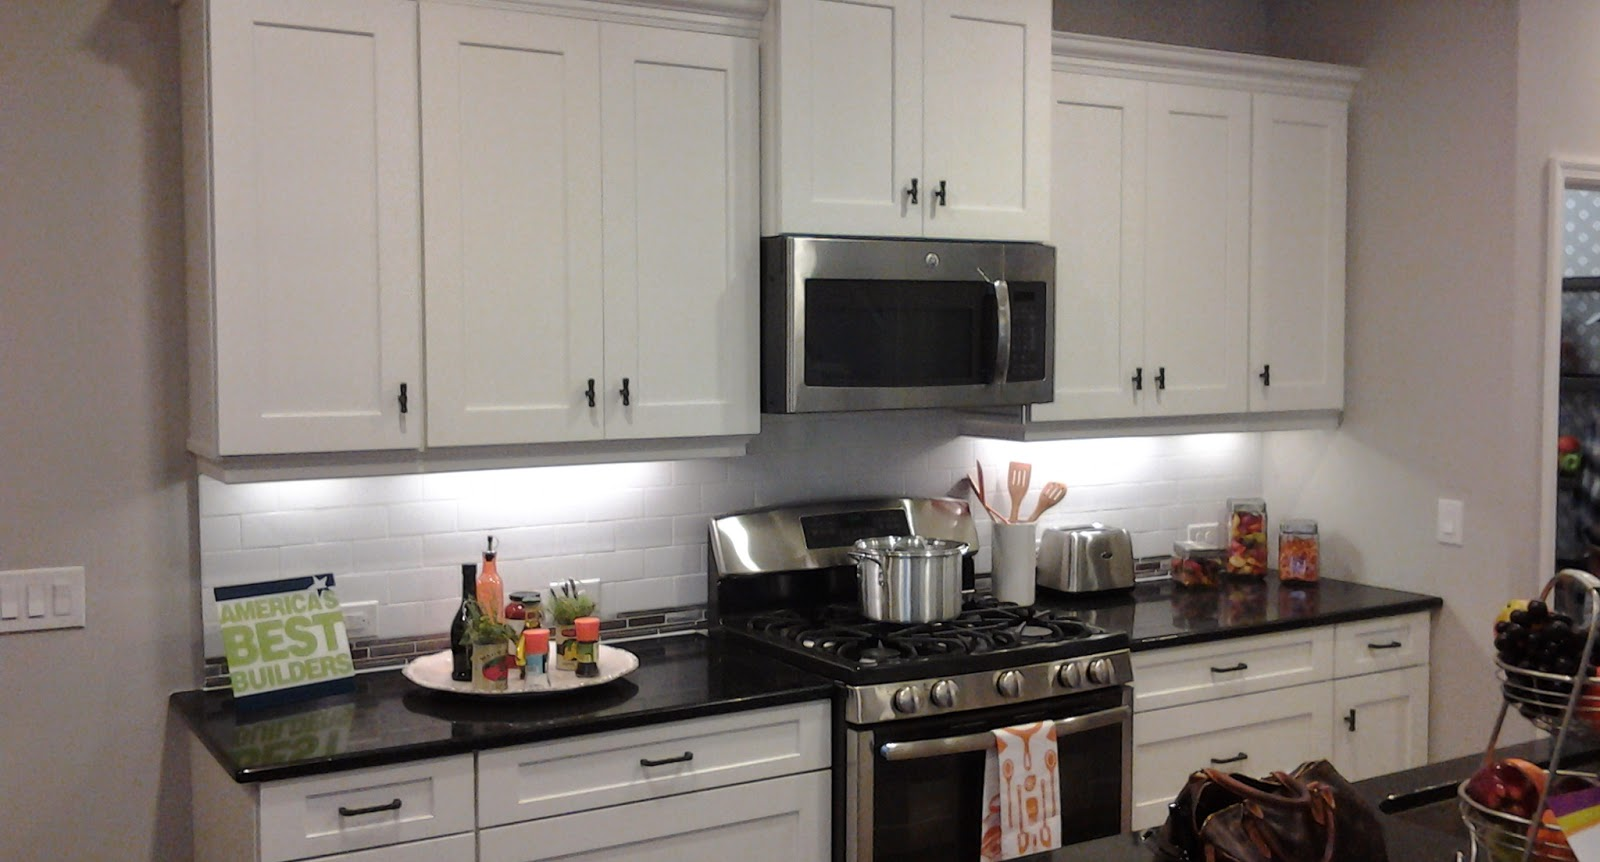 See the Ovation model home kitchen in Venice FL